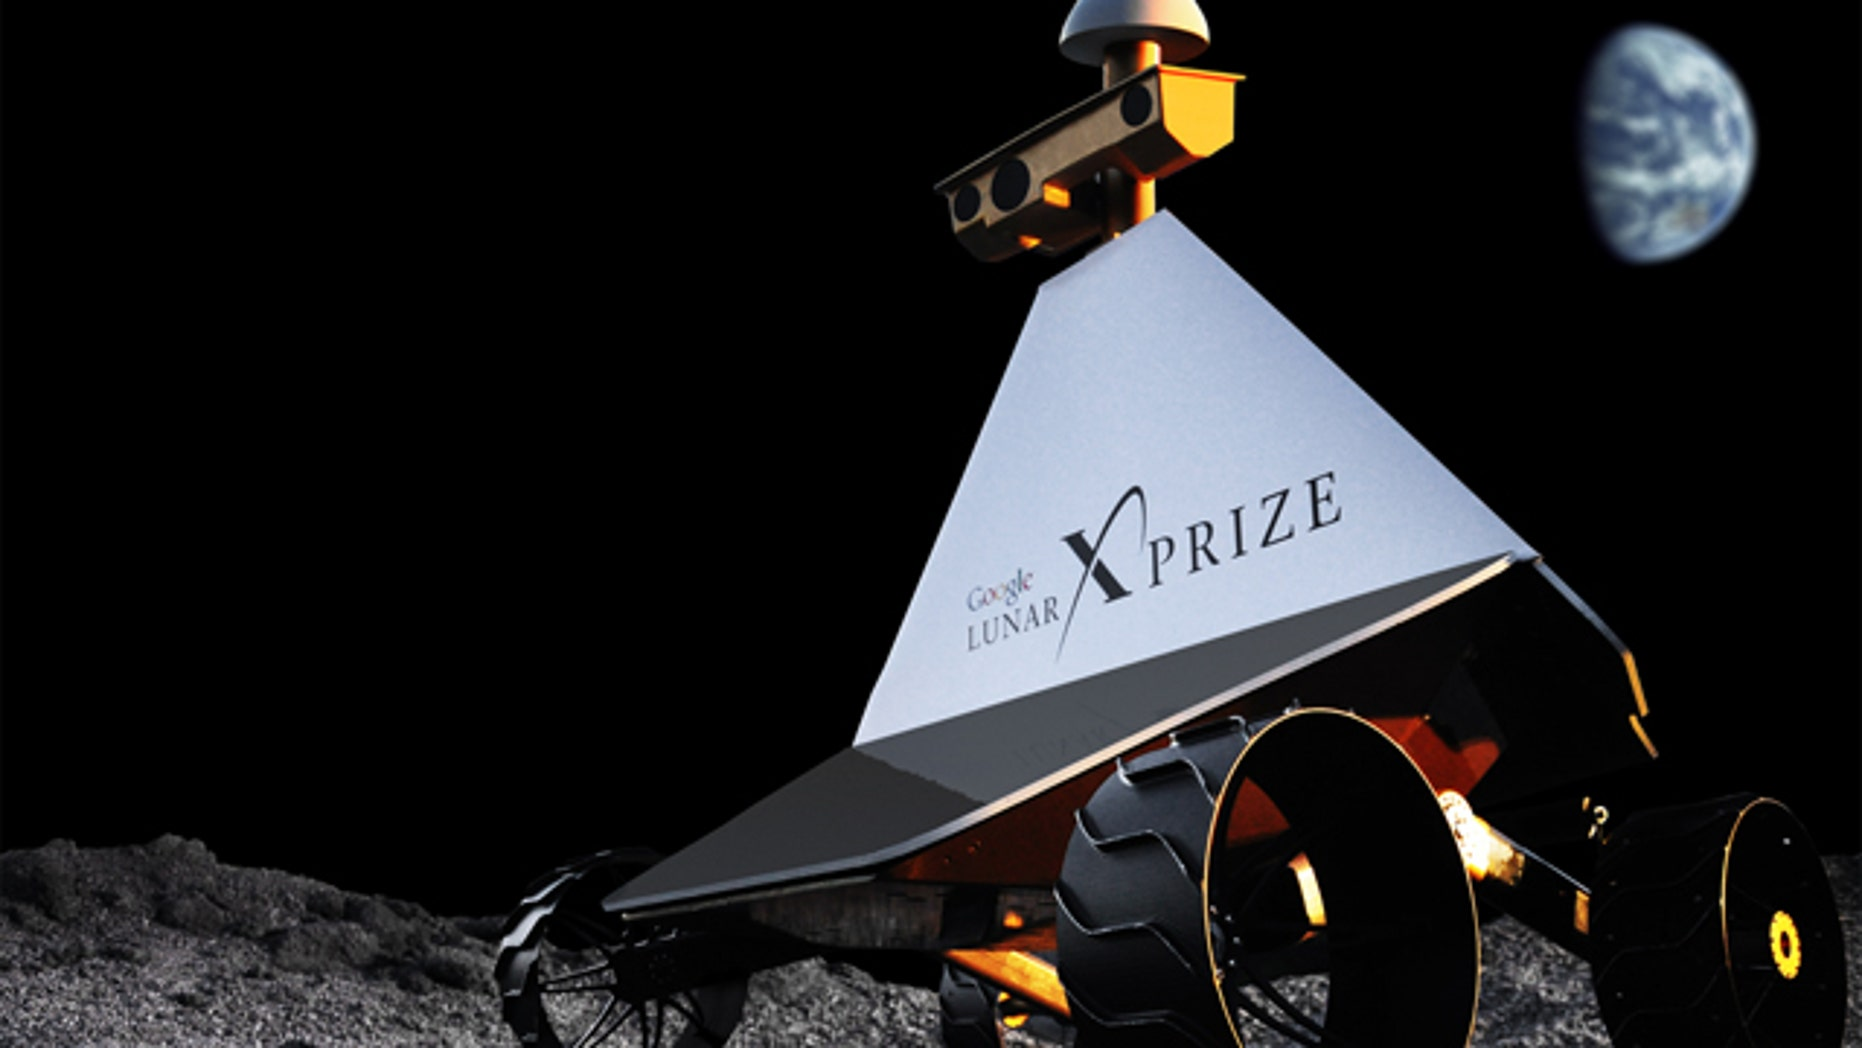 Astrobotic executives plan to land their first robot on the moon in 2013, and hopefully claim the million dolalr Google Lunar X prize.